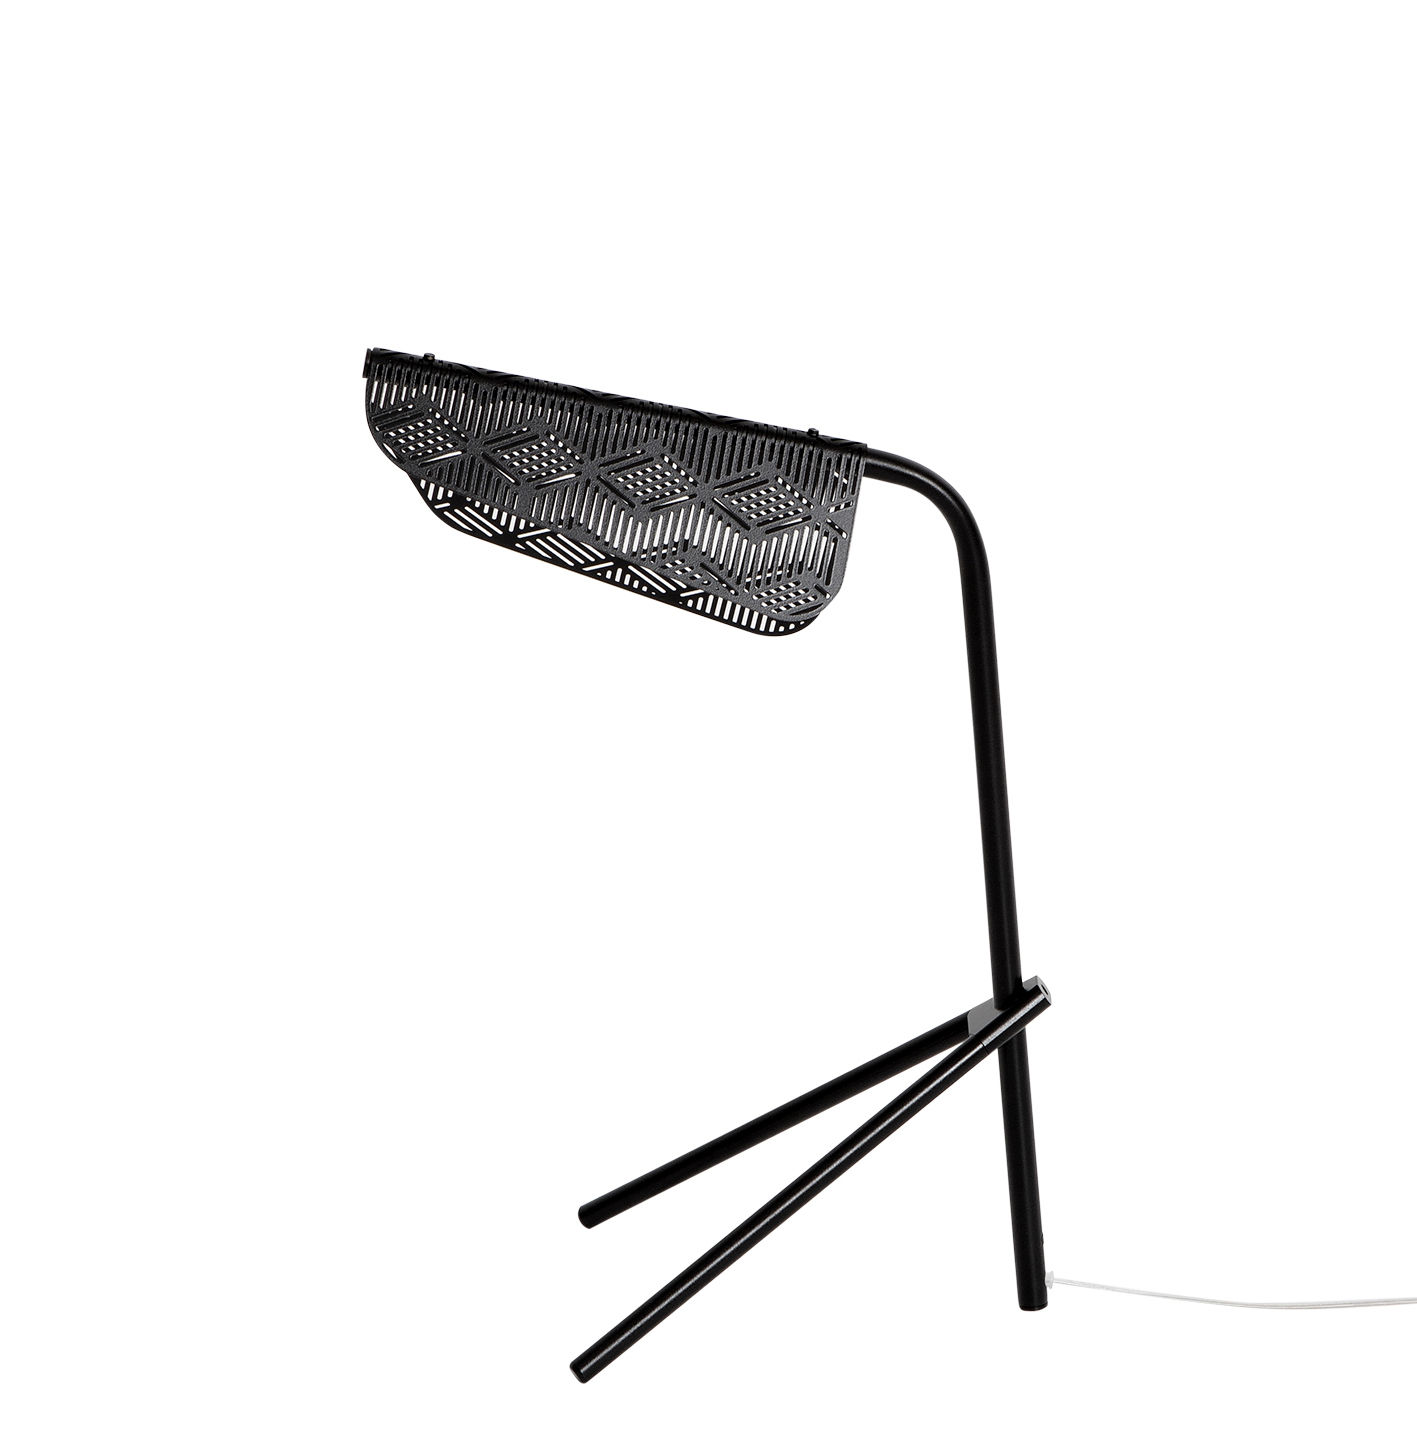 Lighting - Table Lamps - Méditerranéa Table lamp - / LED - Perforated metal by Petite Friture - Black - Varnished brass